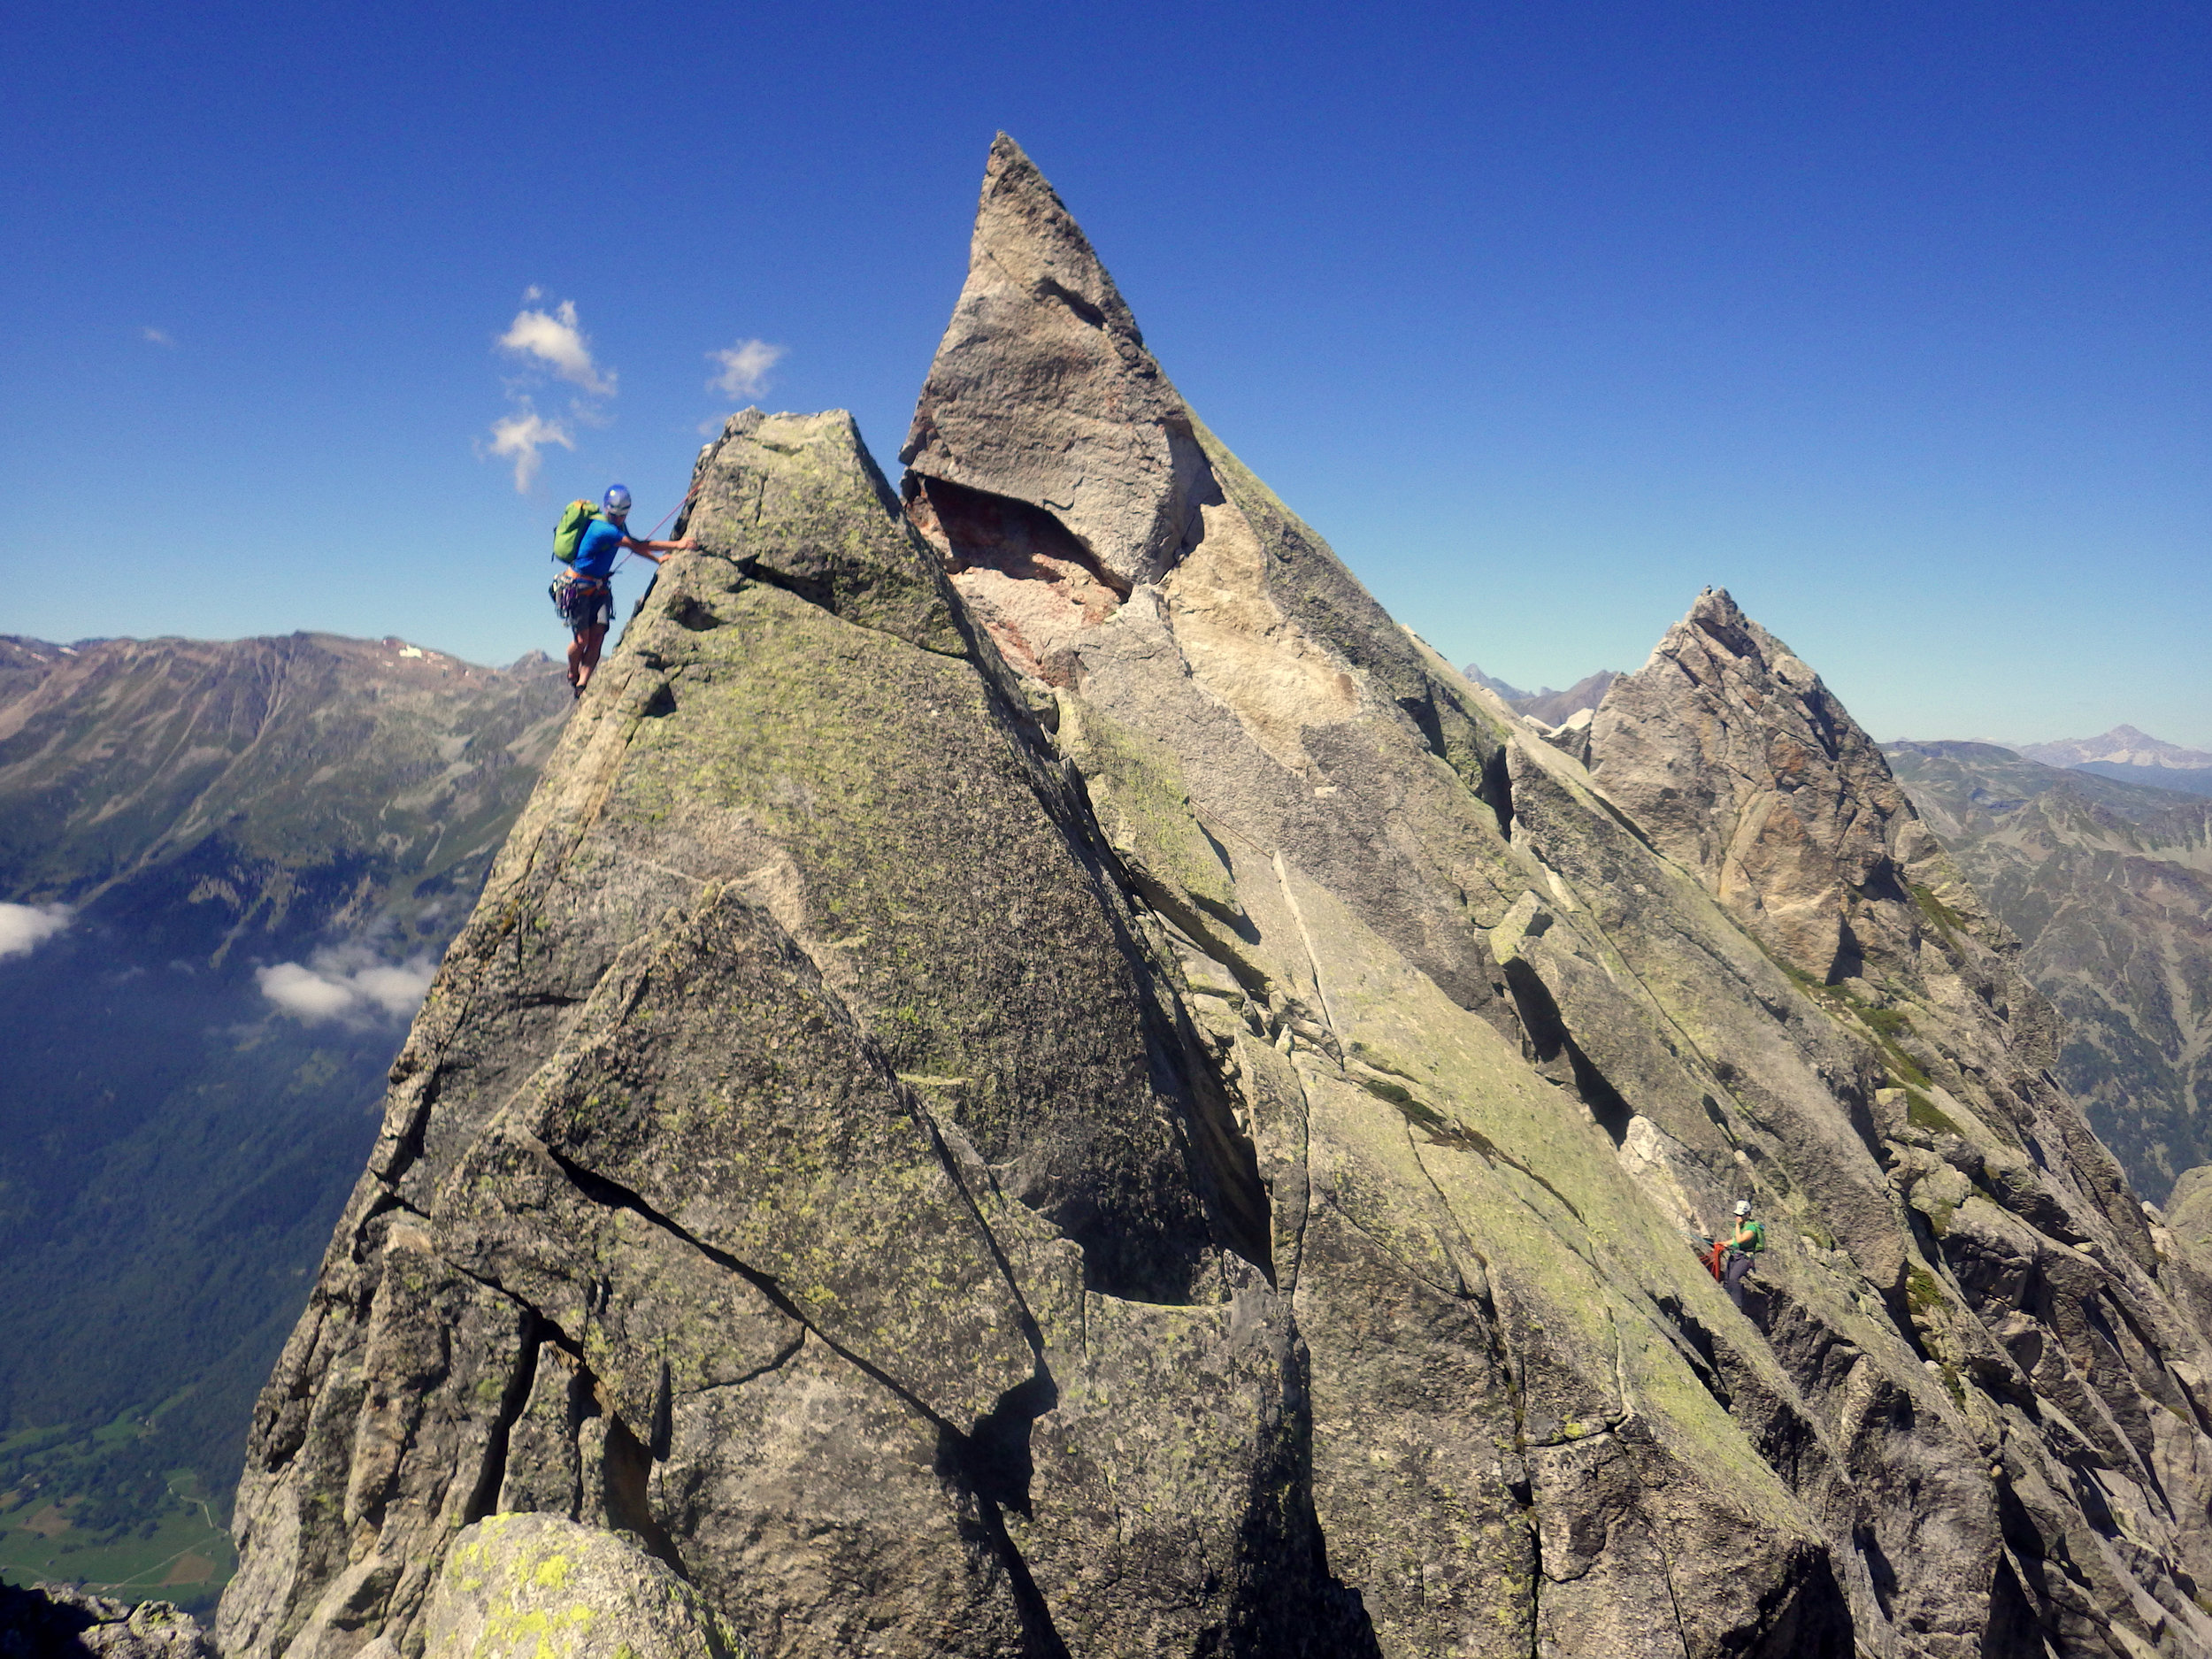 Andy and Cat on the Traverse of La Vergine